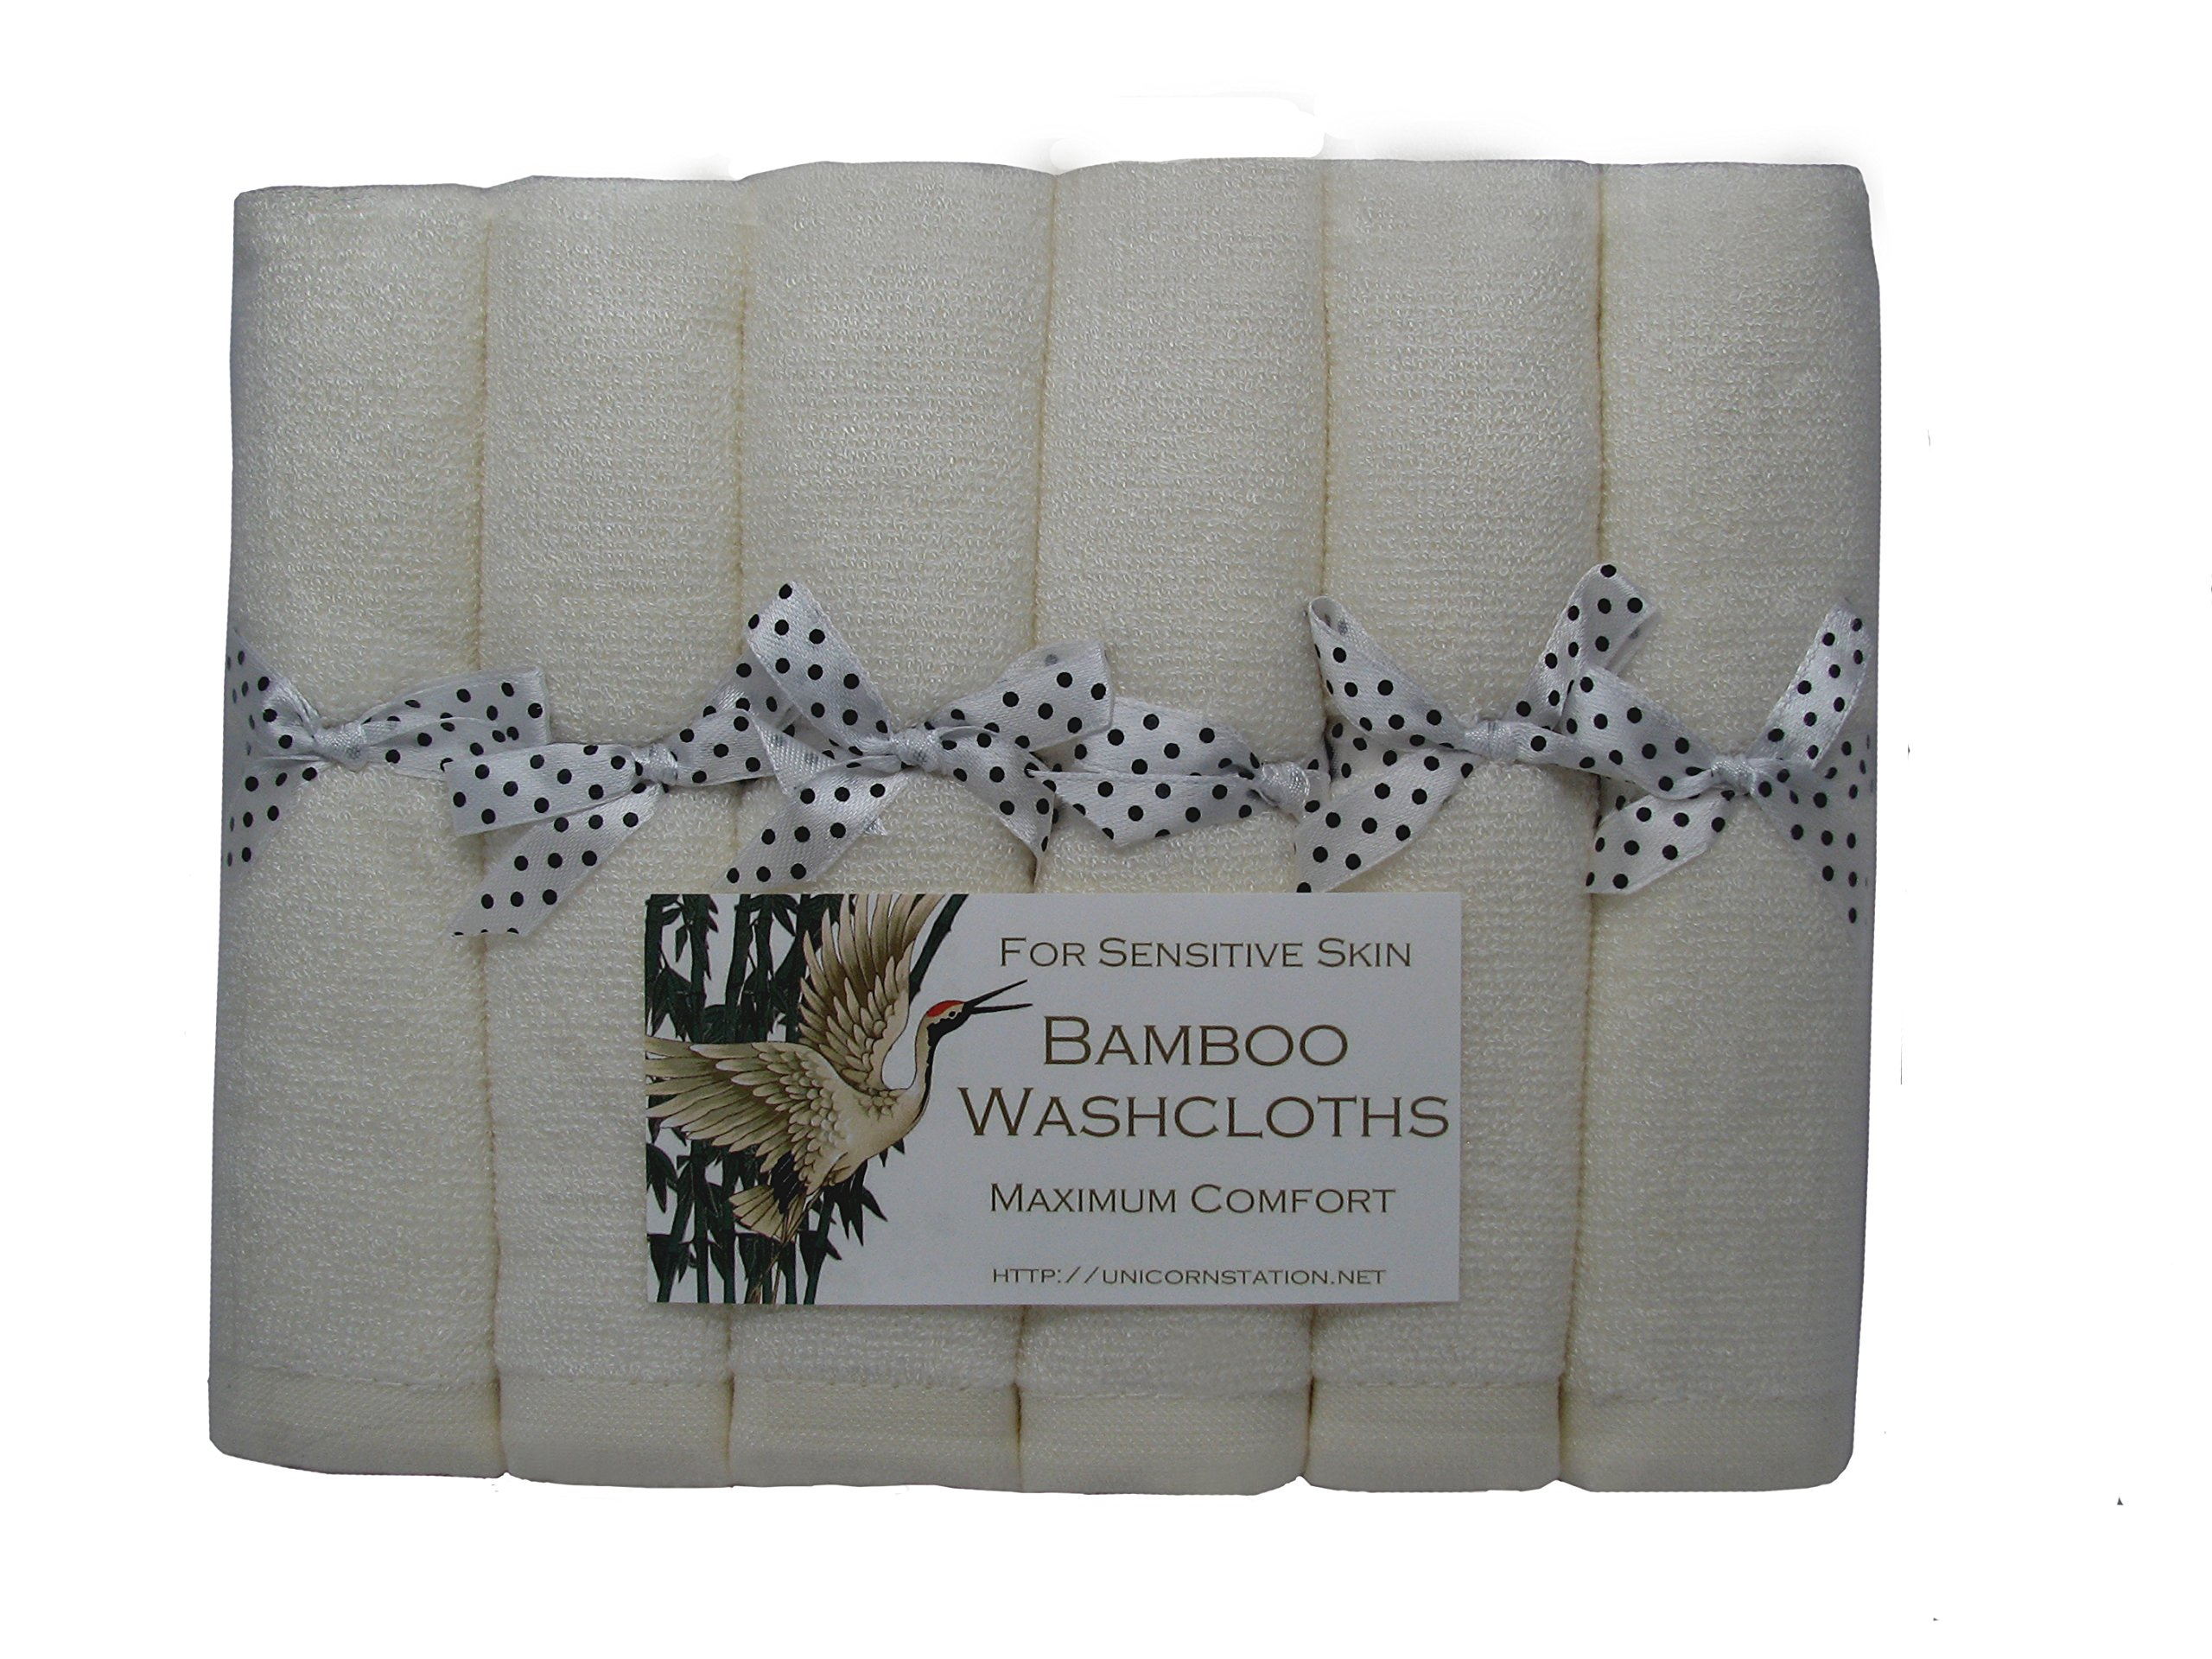 Unicorn Station Bamboo Washcloths for Ultra-Sensitive Skin. Maximizes skin care comfort.Thoughtful gift for cancer patients. White